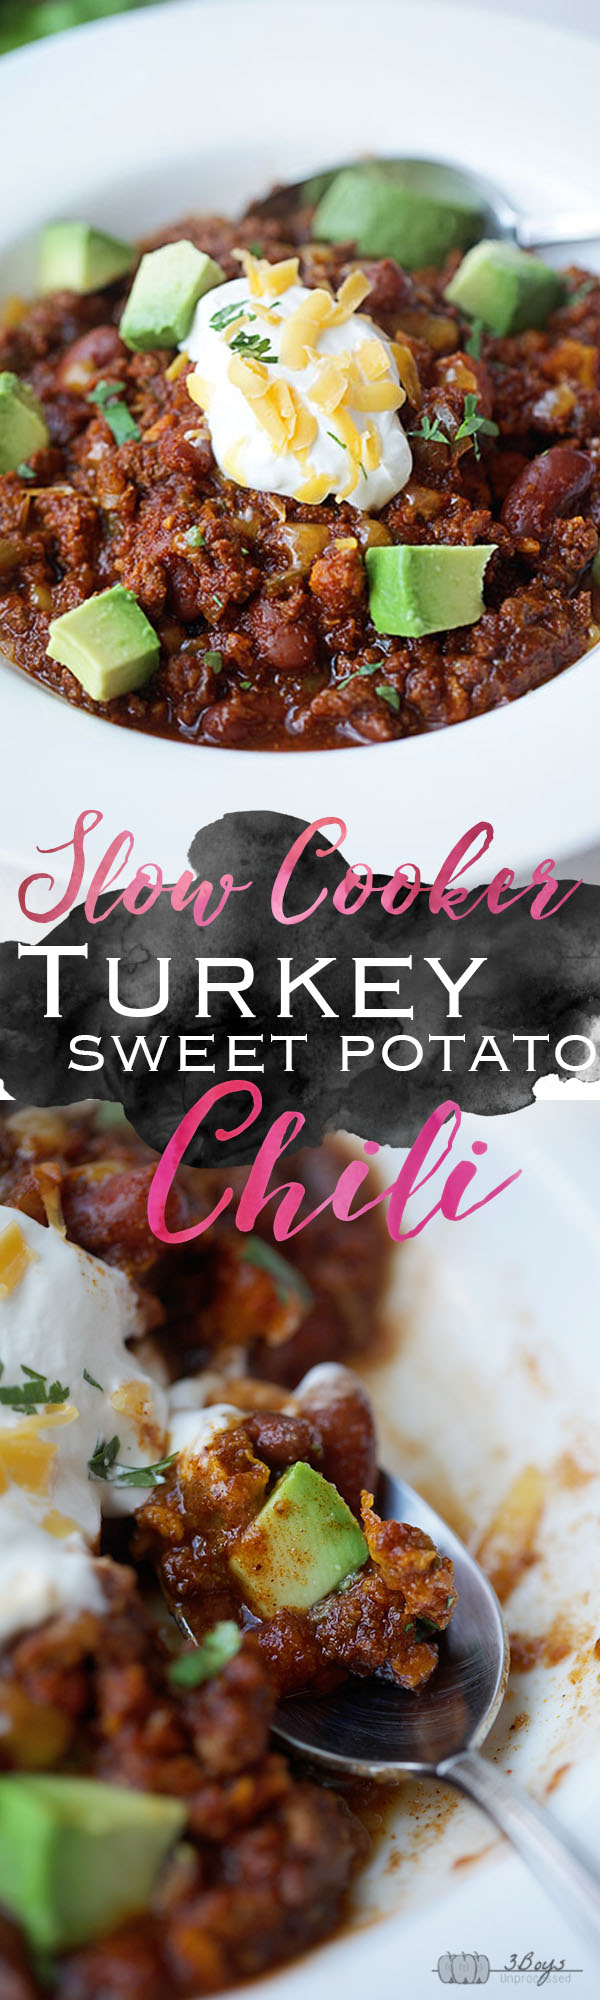 Slow Cooker Turkey Sweet Potato Chili || www.3boysunprocessed.com